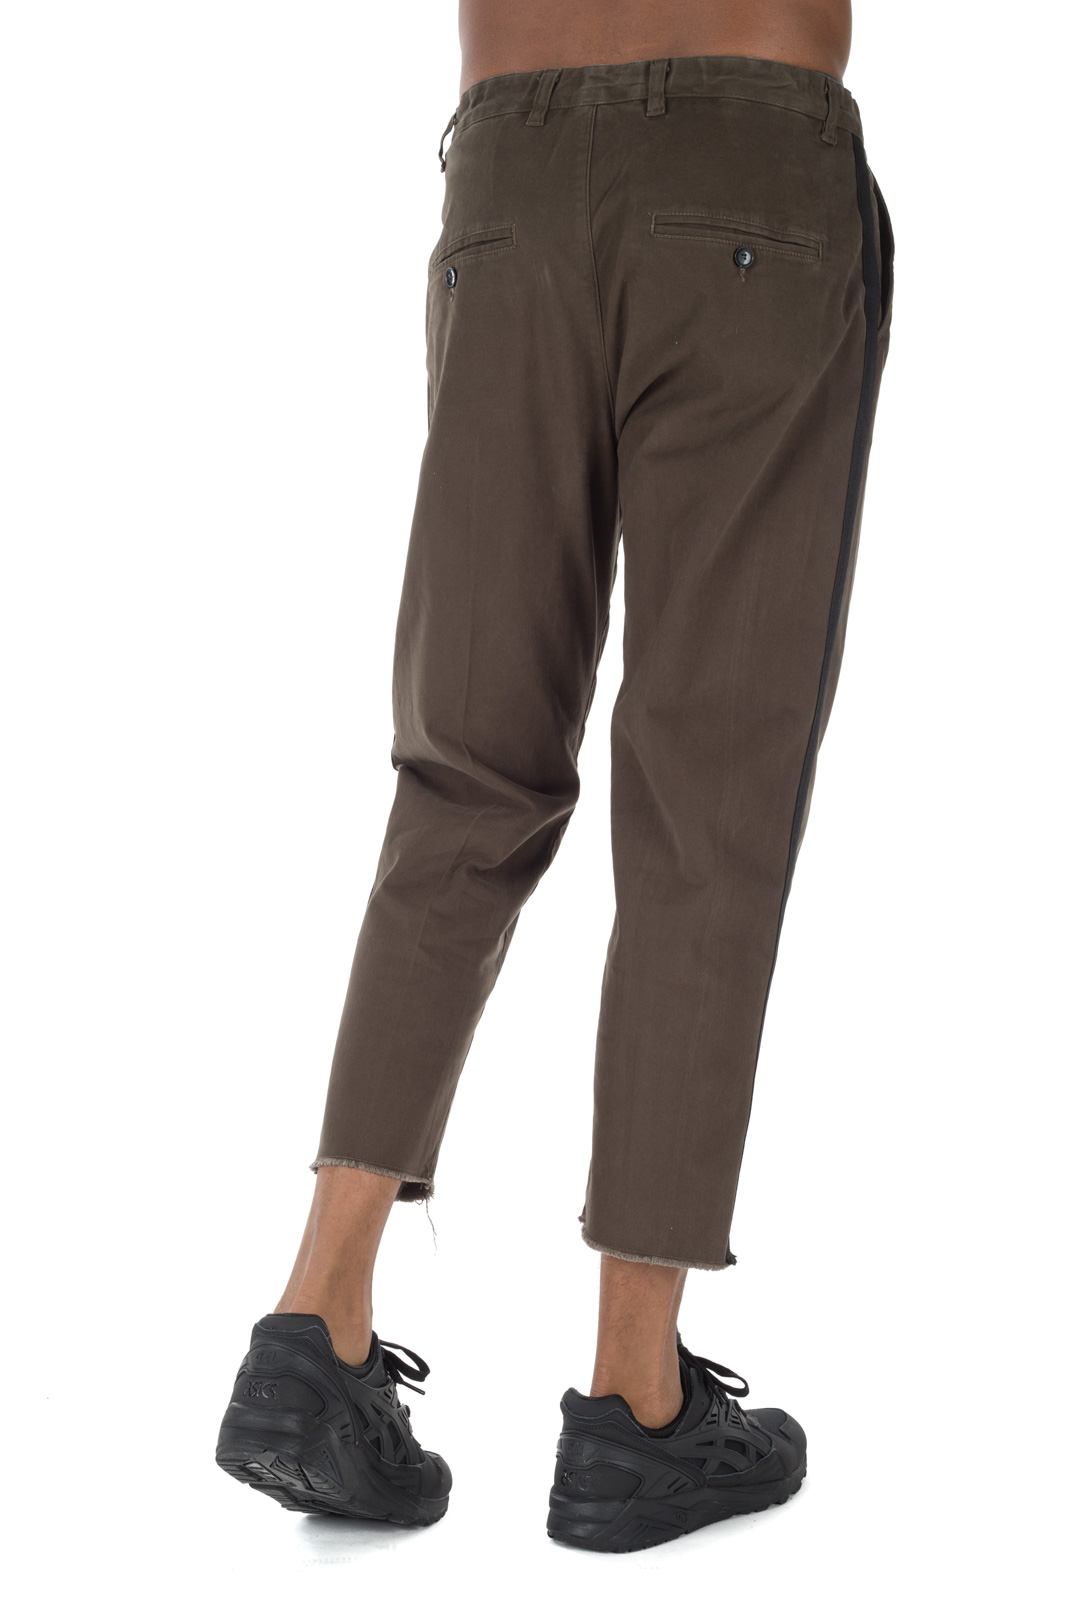 Berna - Green trousers with side band